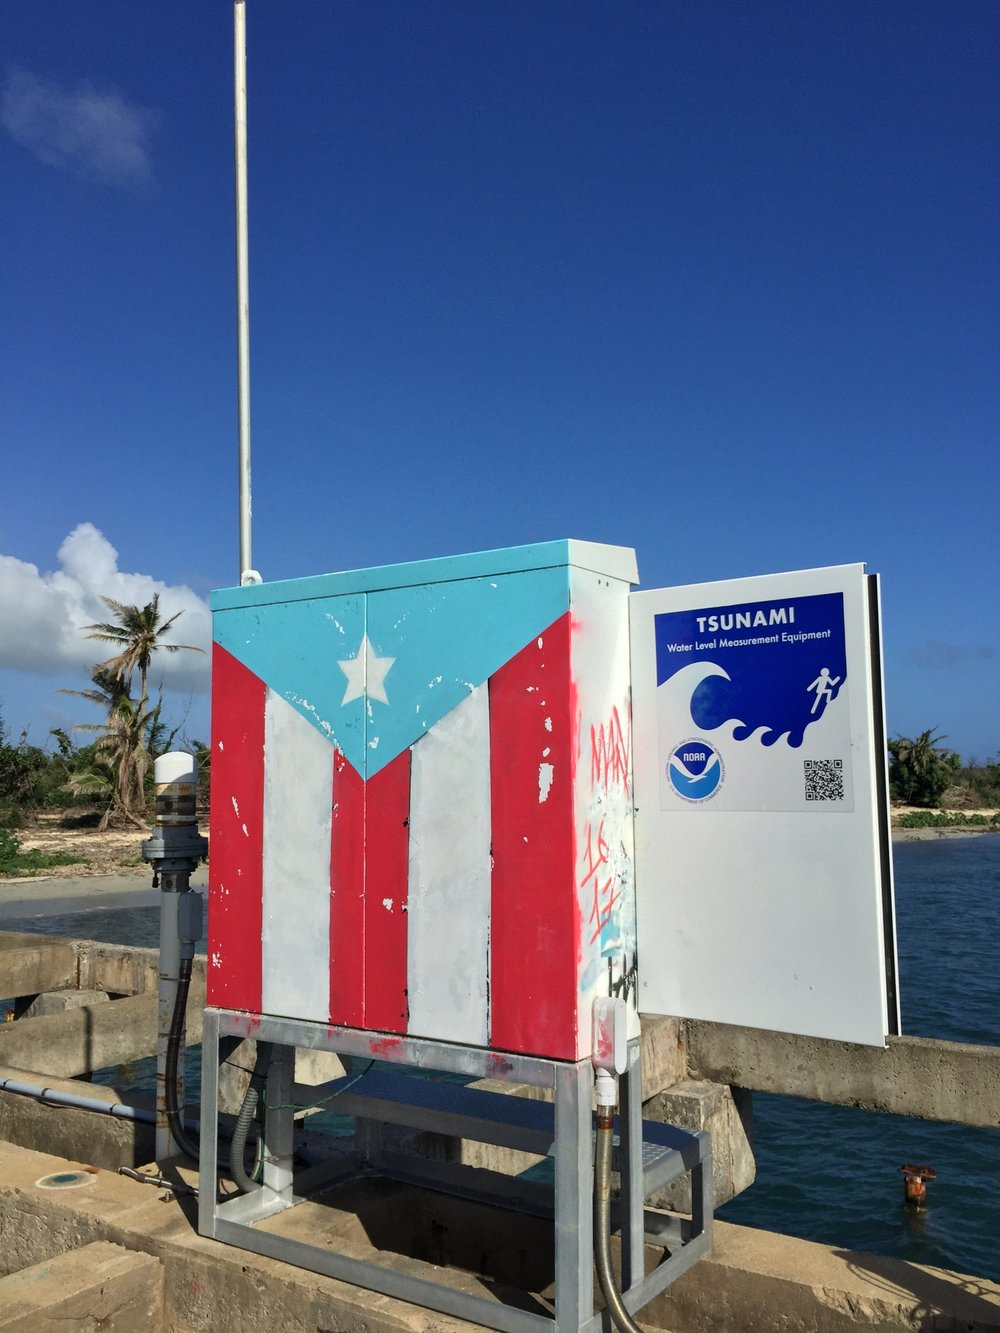 El Camino Travel Volunteers in Puerto Rico After Hurricane Maria